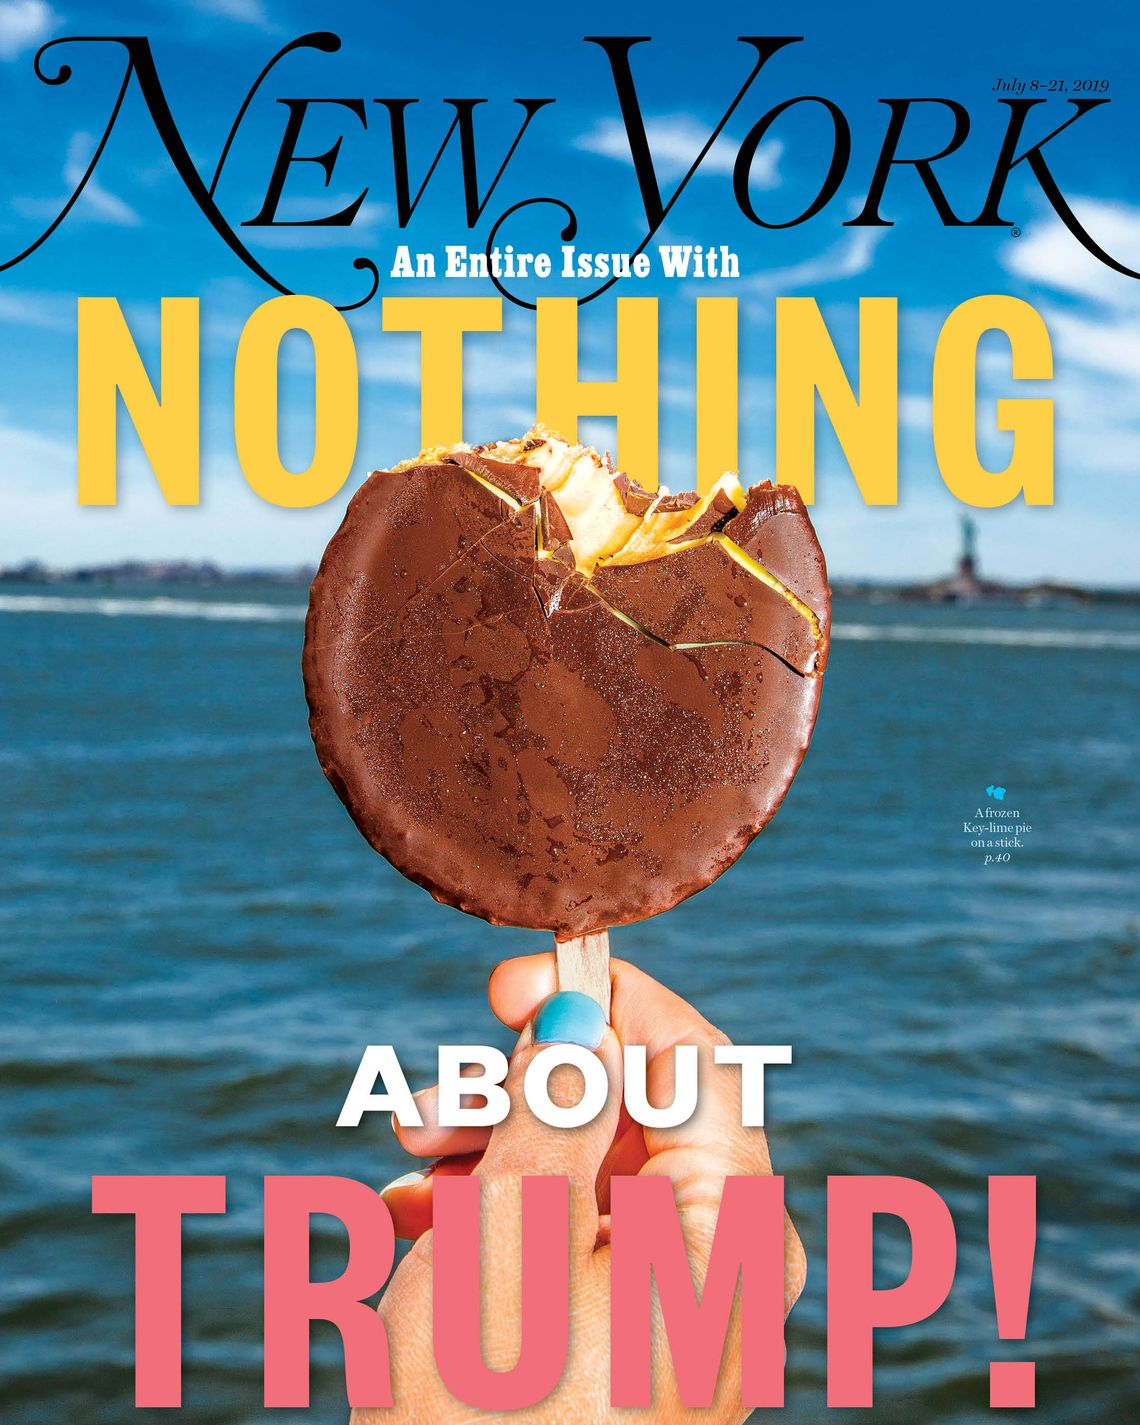 On the Cover: An Entire Issue With Nothing About Trump